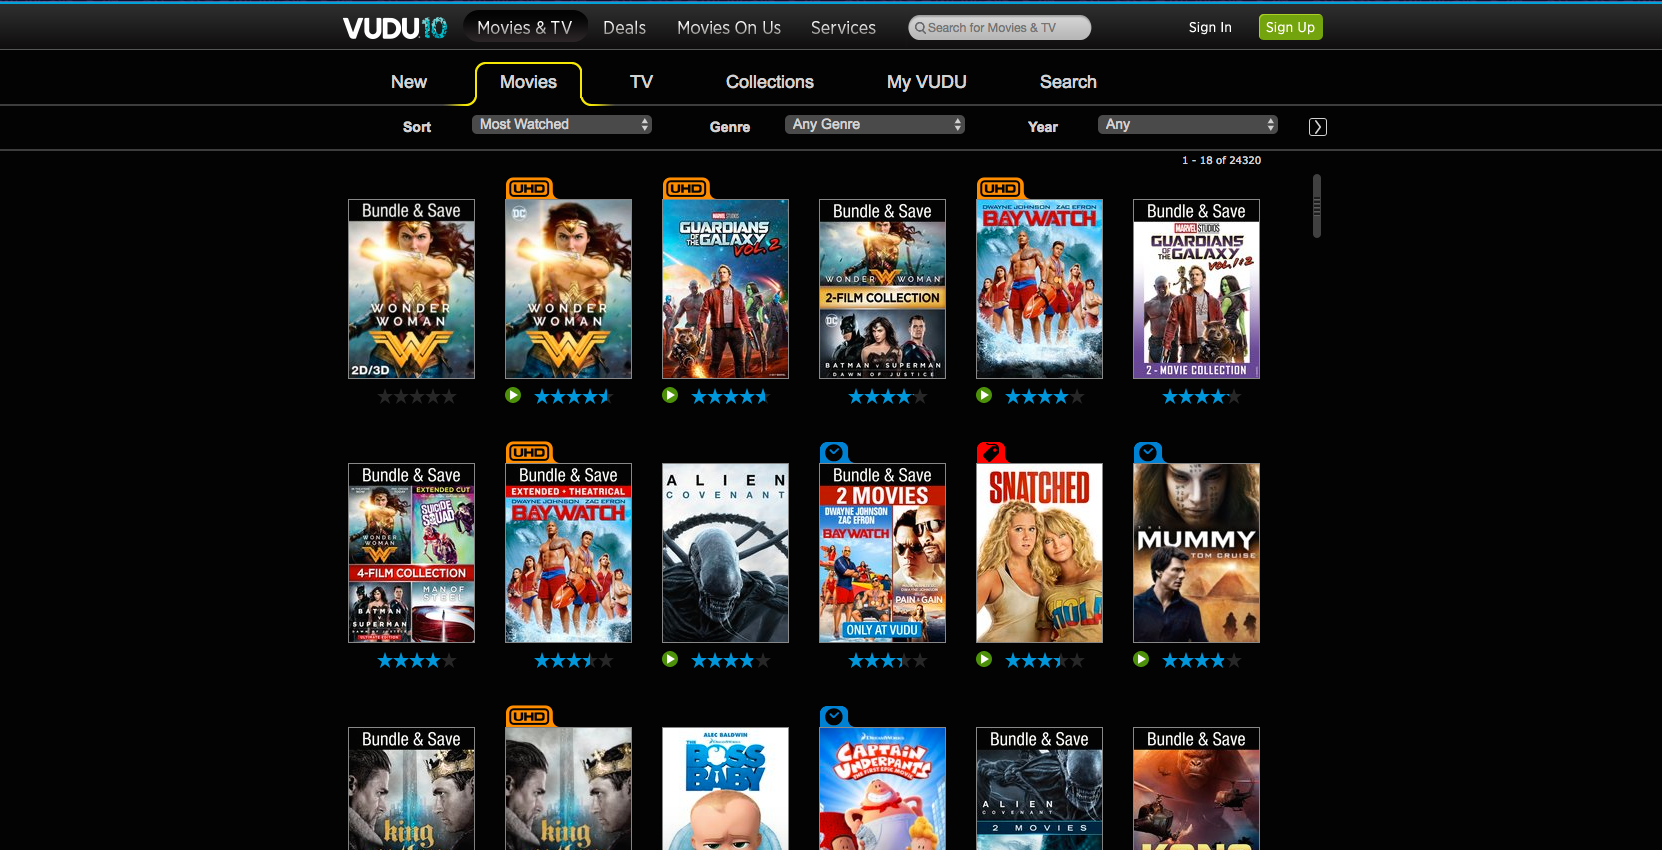 Vudu web interface for Movies category